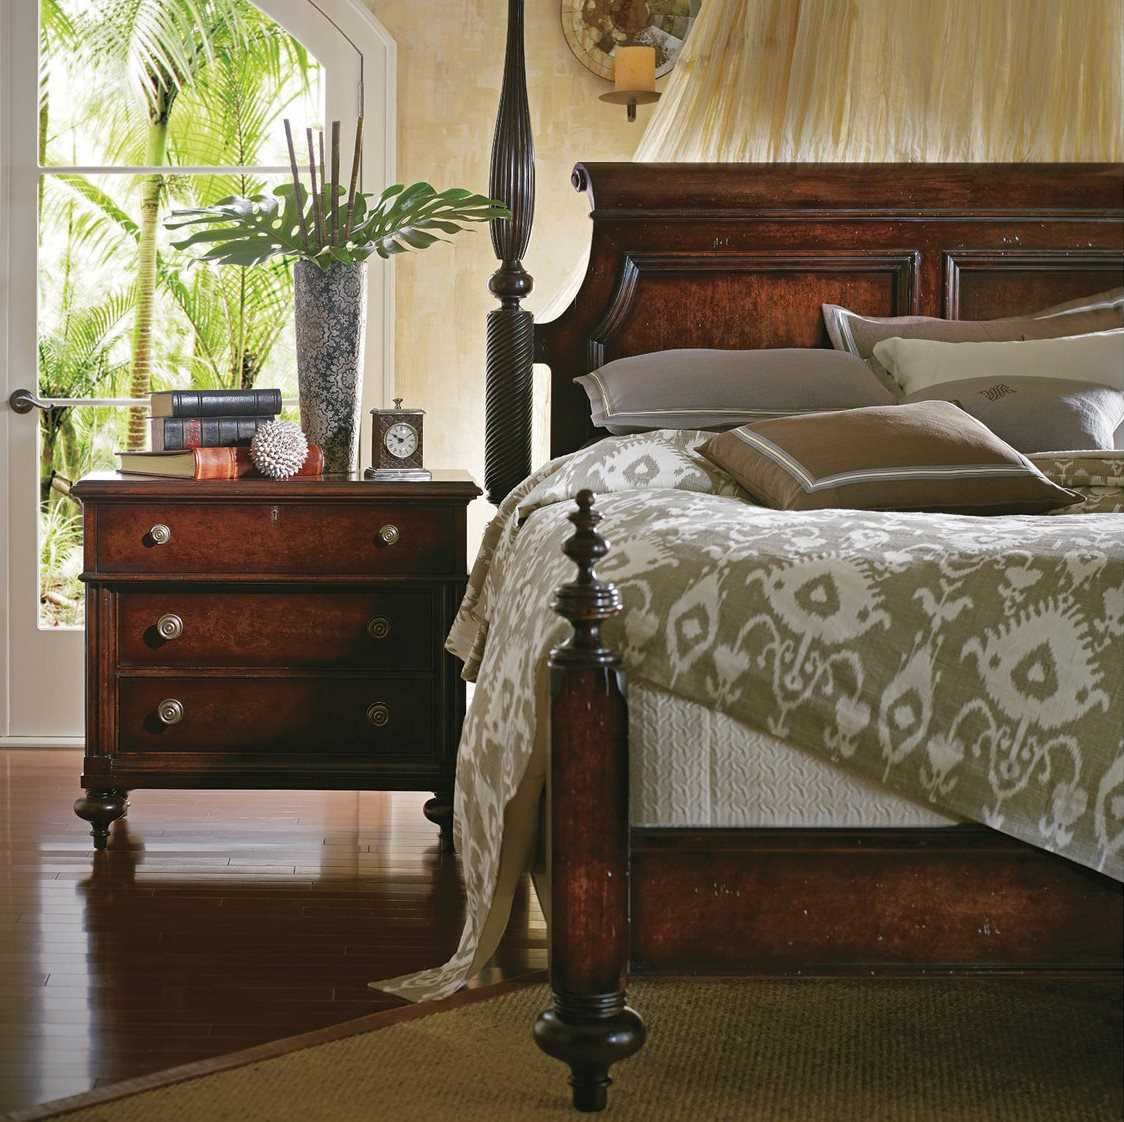 Stanley furniture british colonial bedroom set sl0206342set for Stanley furniture